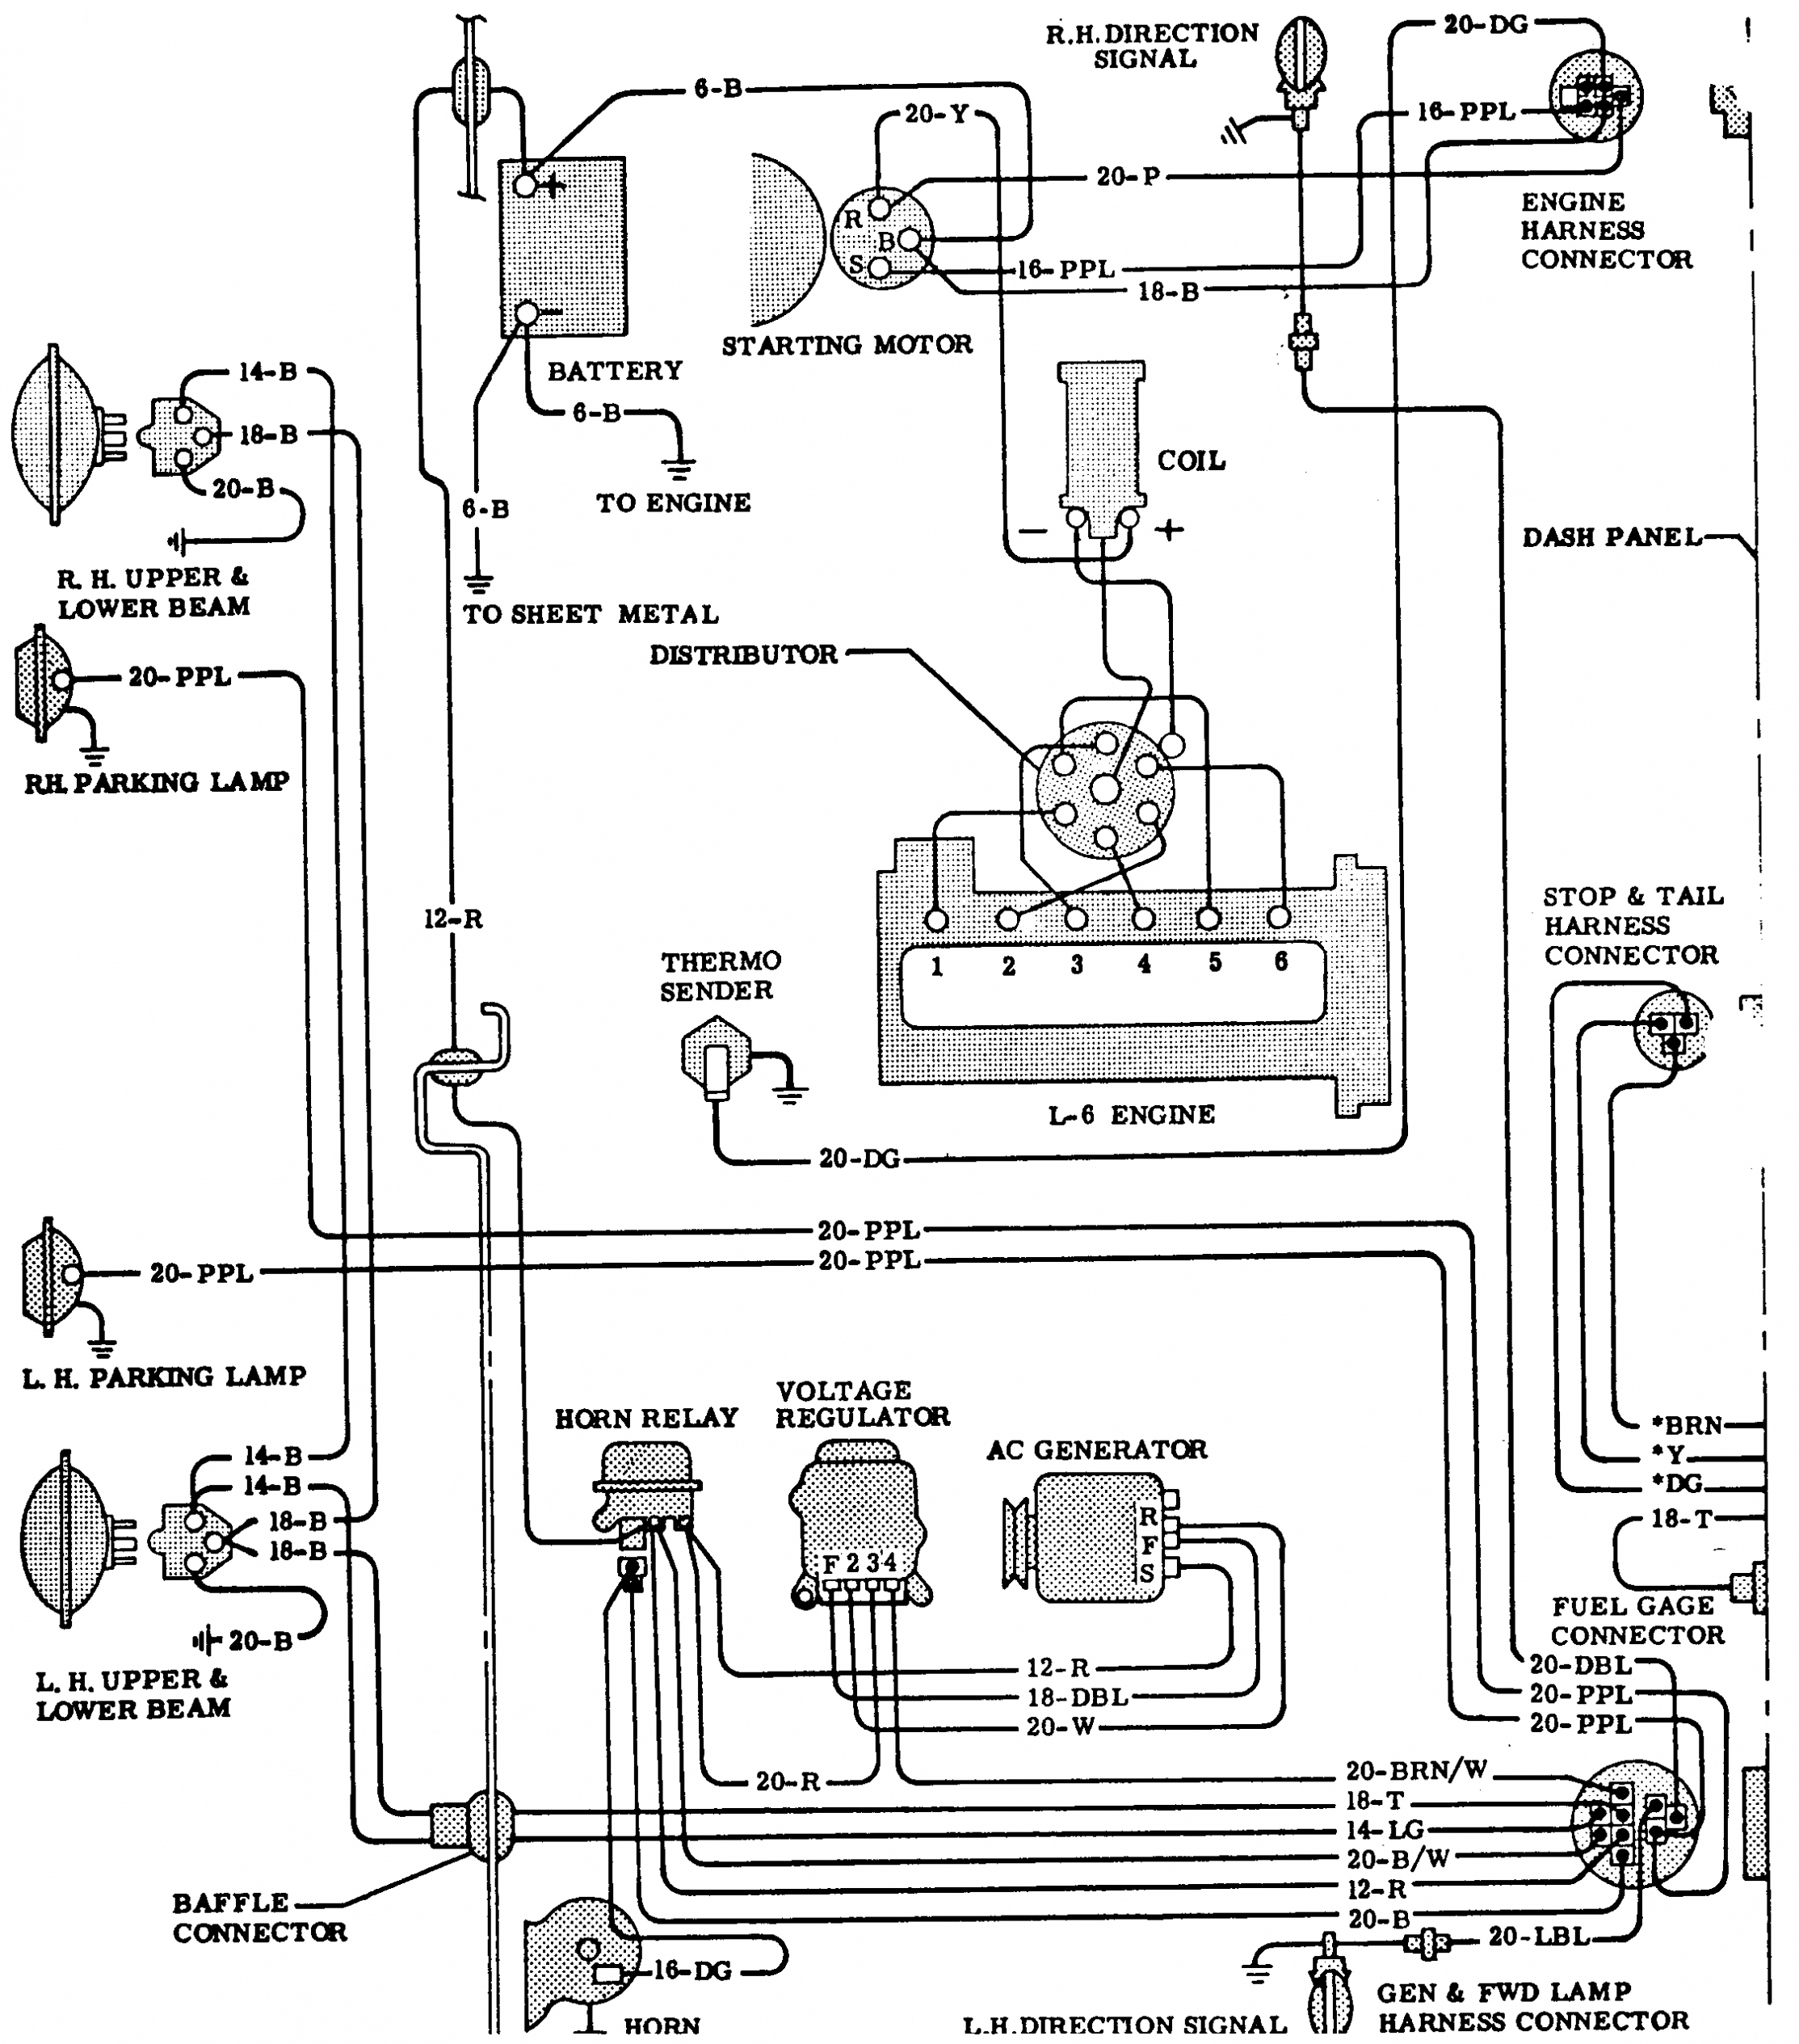 Chevy V6 Vortec Engine Diagram | Wiring Library - 4.3 Vortec Wiring Diagram